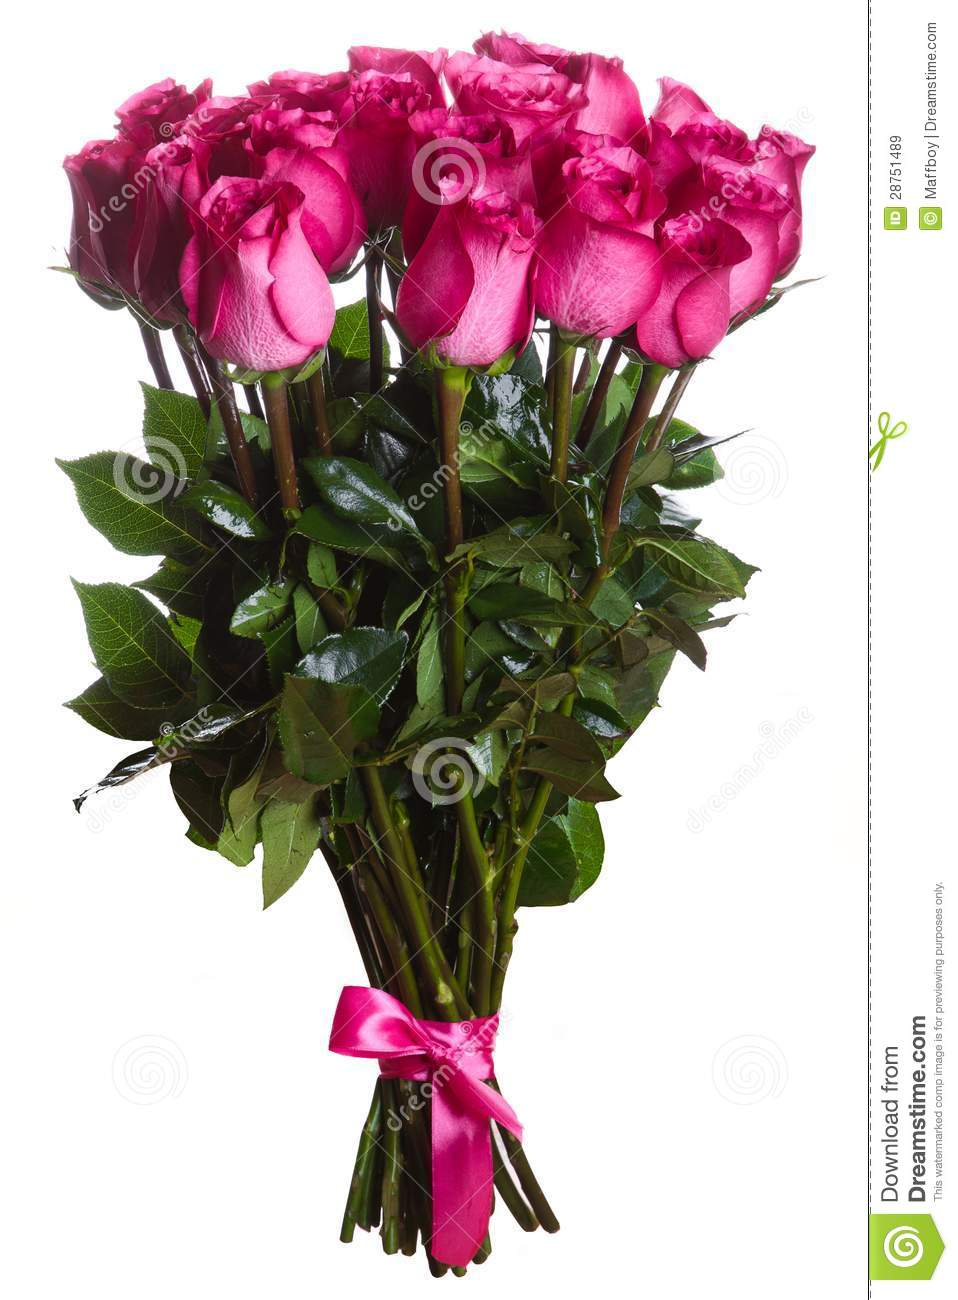 Rose Flowers Bouquet Isolated Stock Image Image Of Bunch Blossom